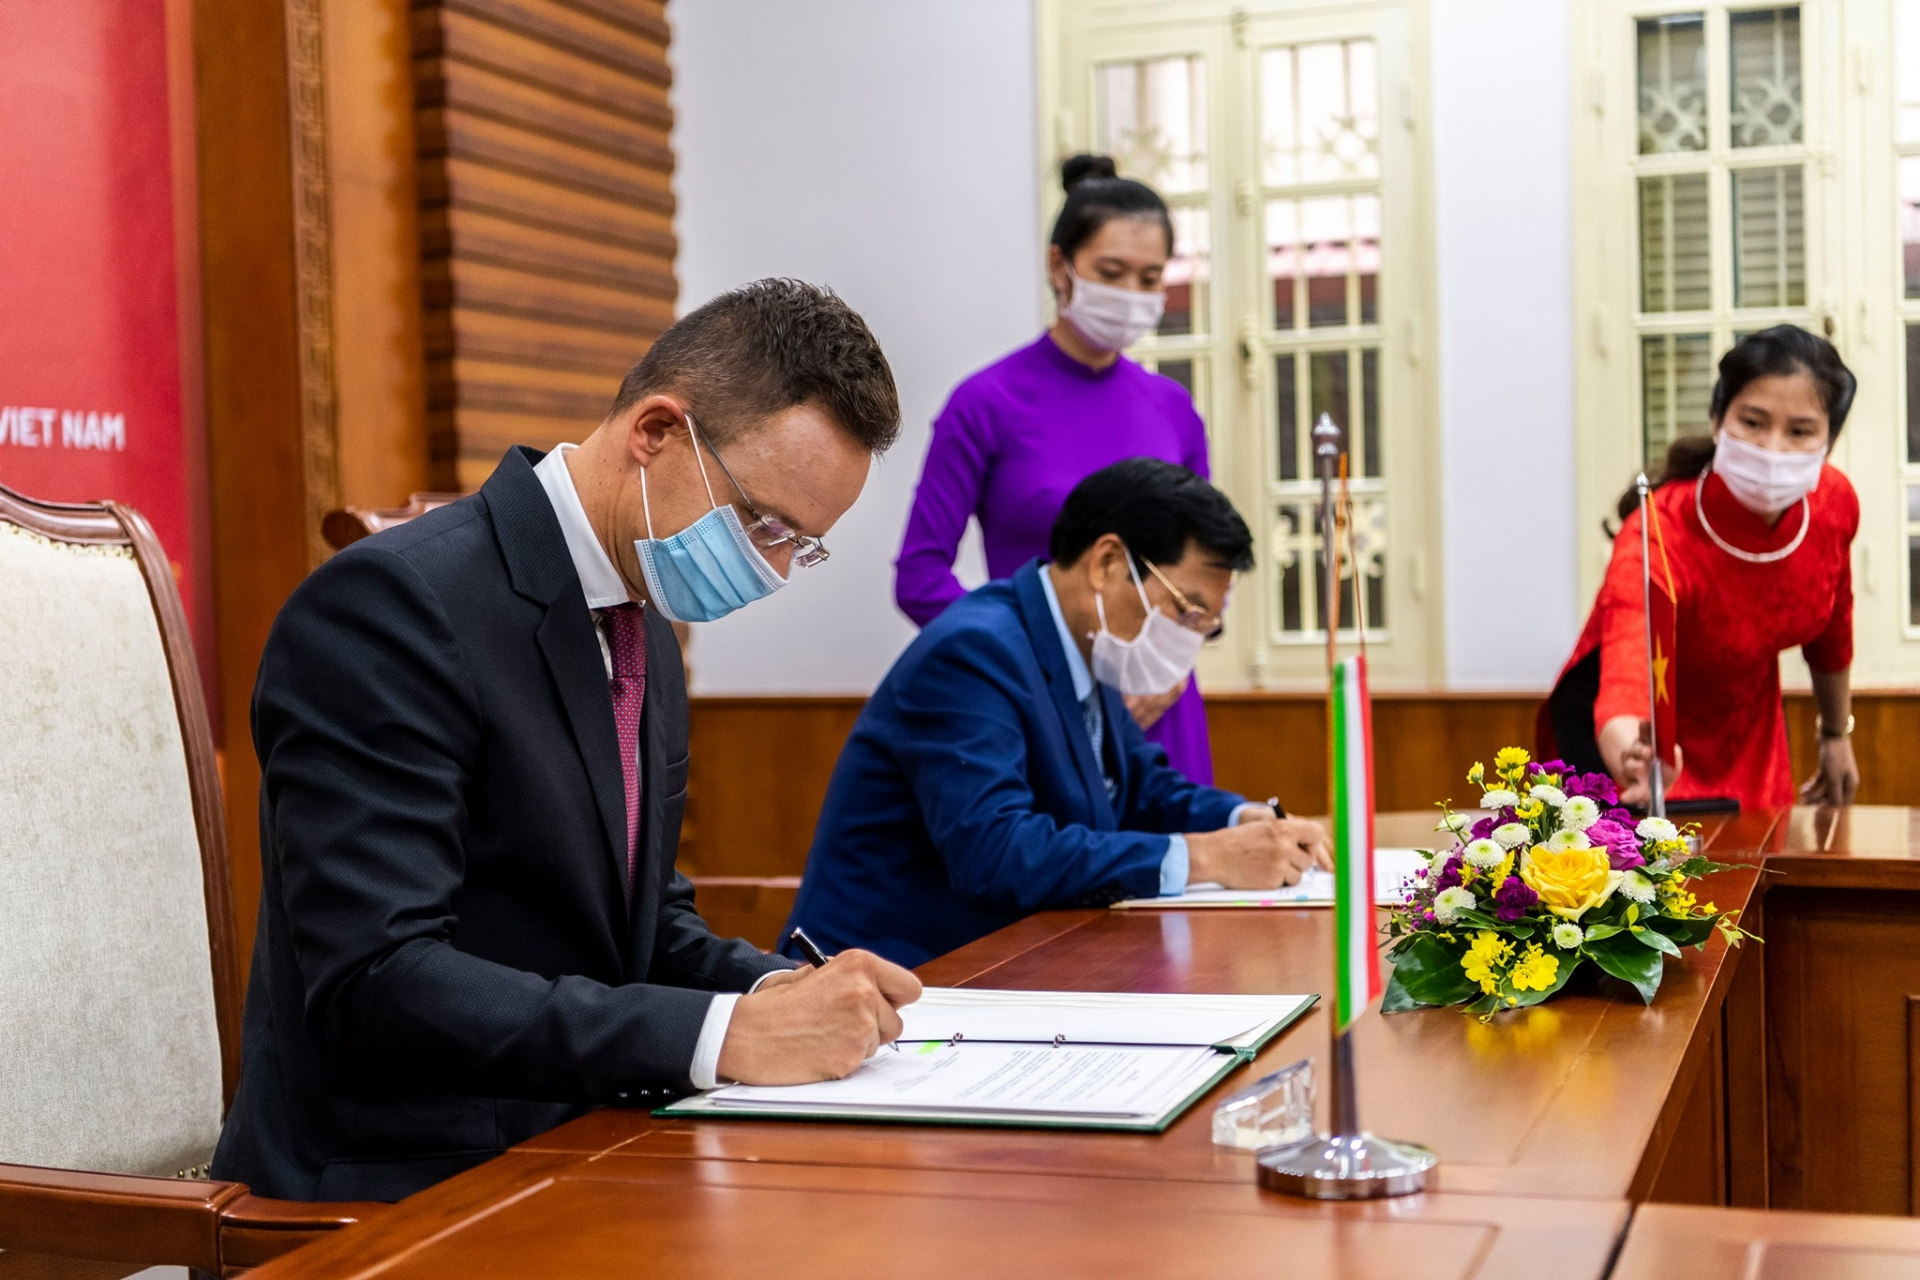 Hungary wishes to further strengthen comprehensive partnership with Vietnam